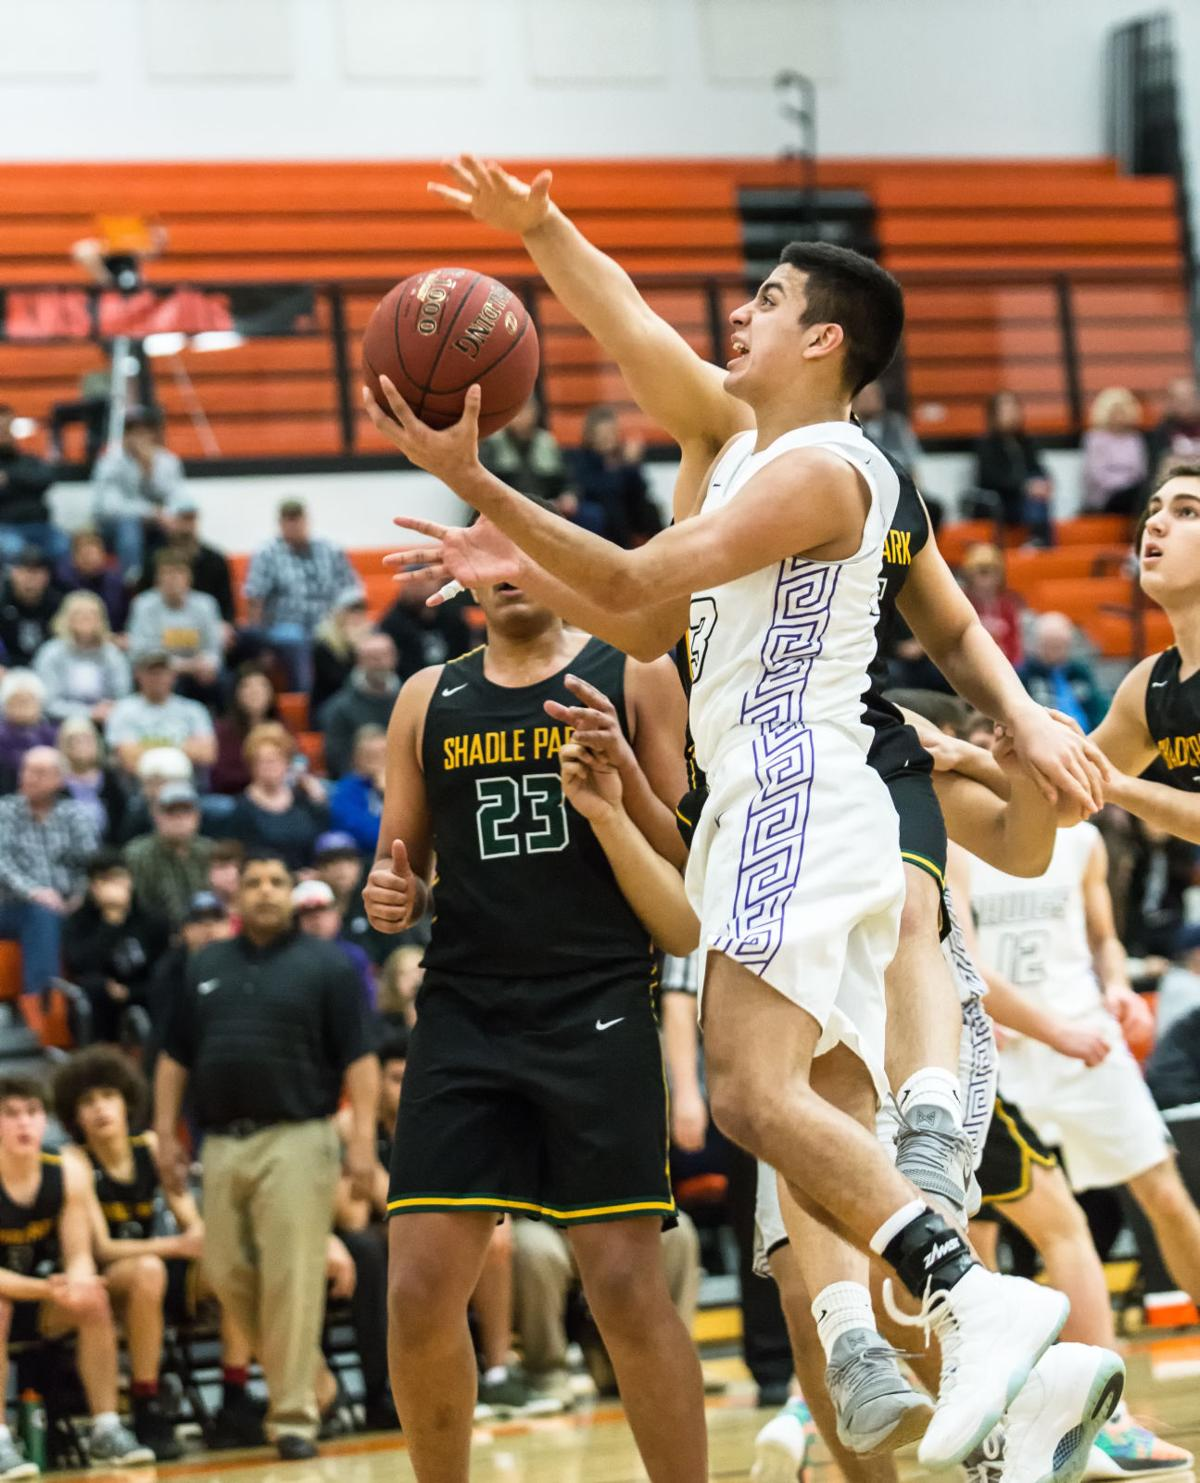 District 8 boys   Dawgs end season with loss to Shadle Park